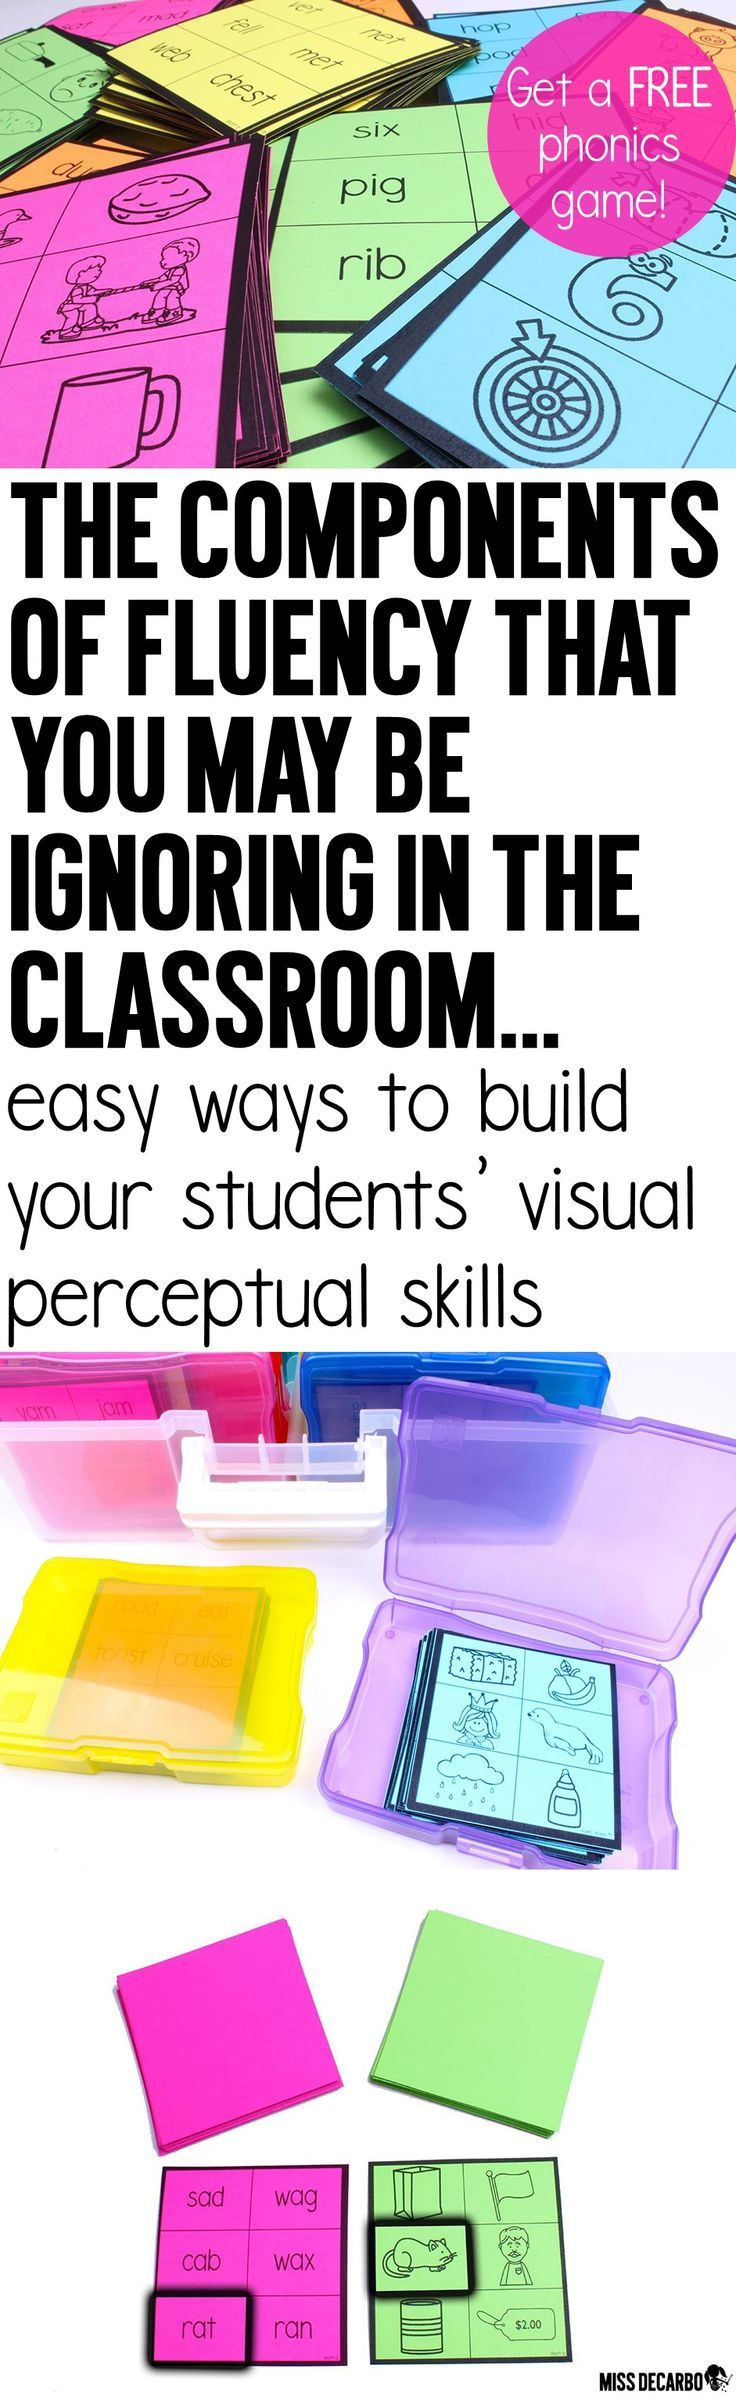 "Read about how visual perceptual skills are related to student learning, and discover easy and fun ways to build visual processing skills in the classroom. Get a FREE Brainamin phonics ""short a"" game to try out with your students!"